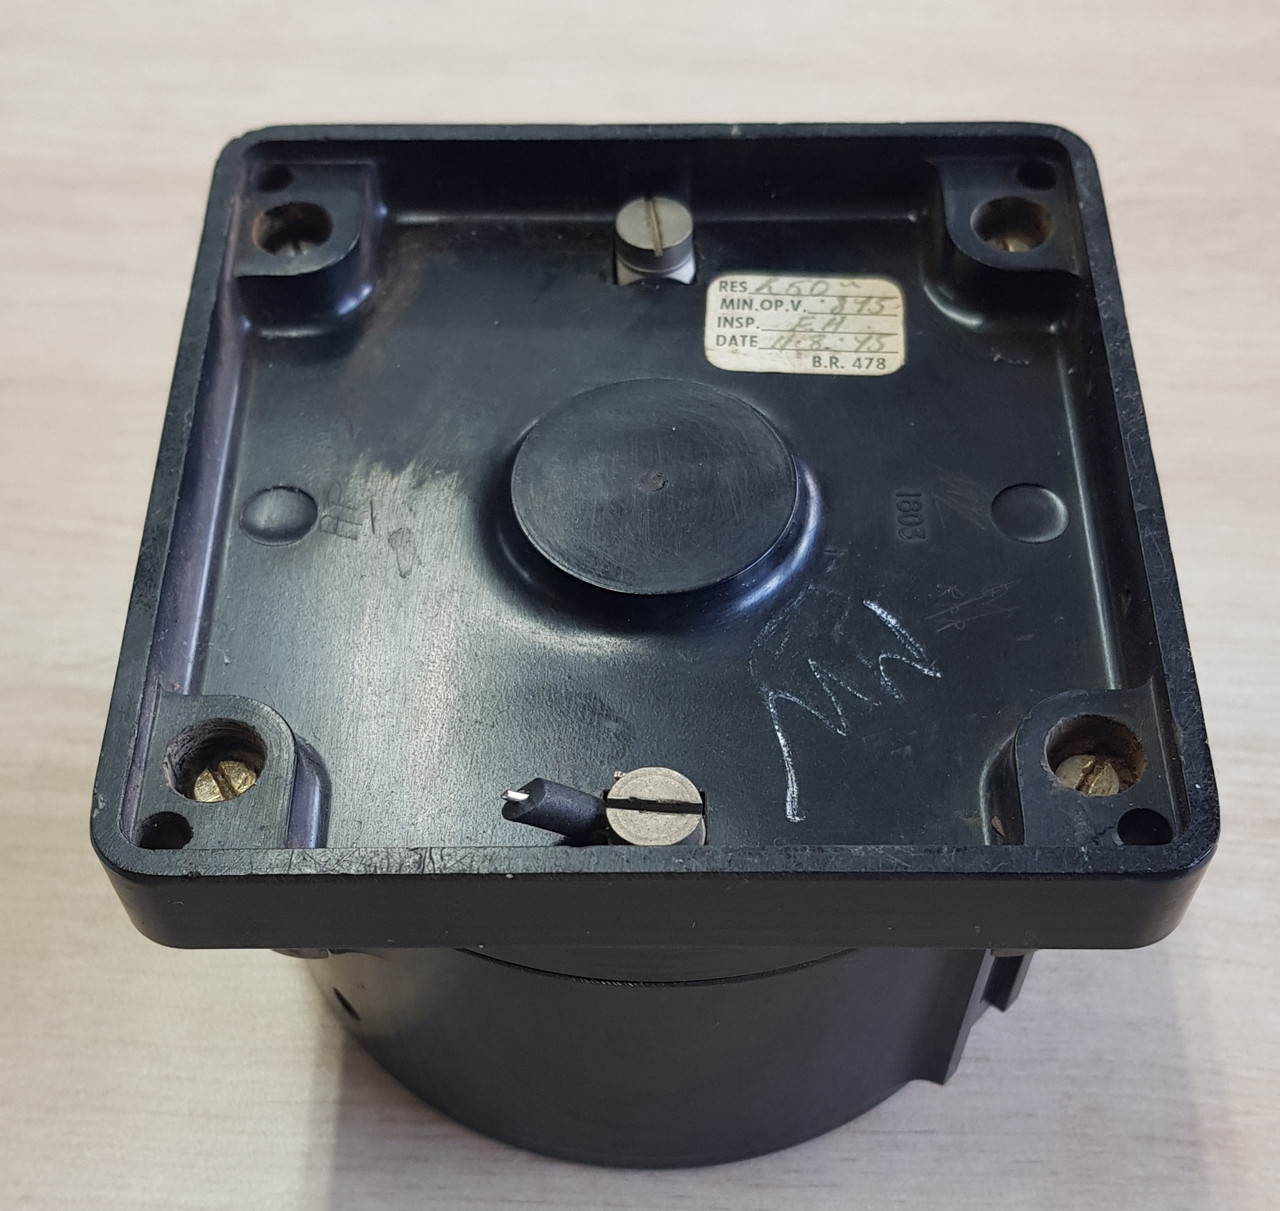 VT 4079. BR(M) SQUARE BASED BAKELITE DISTANT SIGNAL REPEATER.